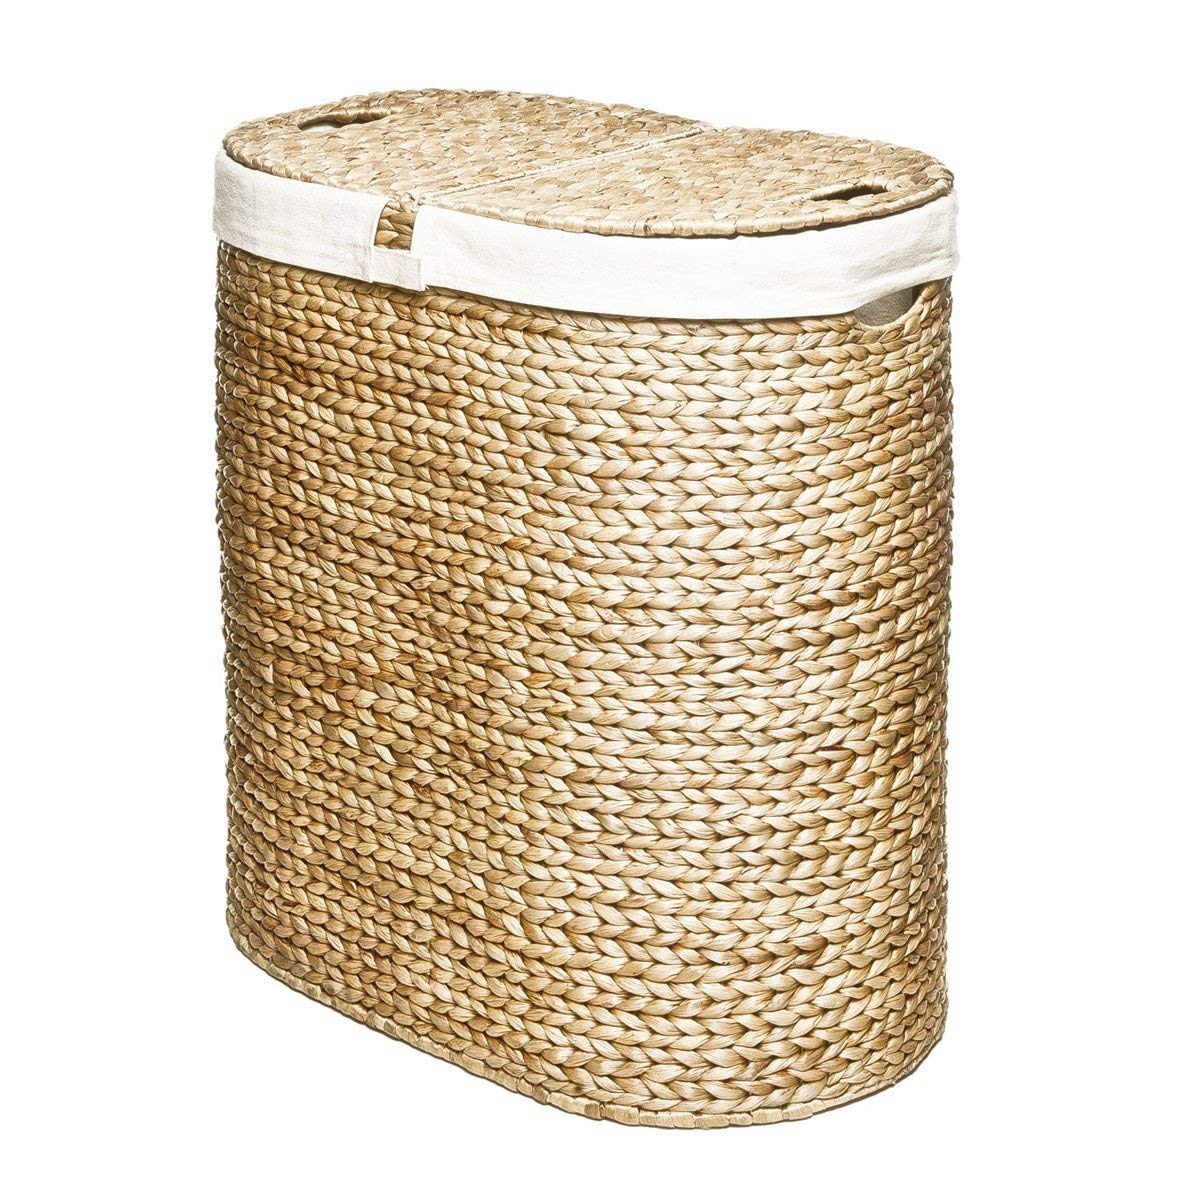 Vintage Laundry Room Decor Woven Double Hamper